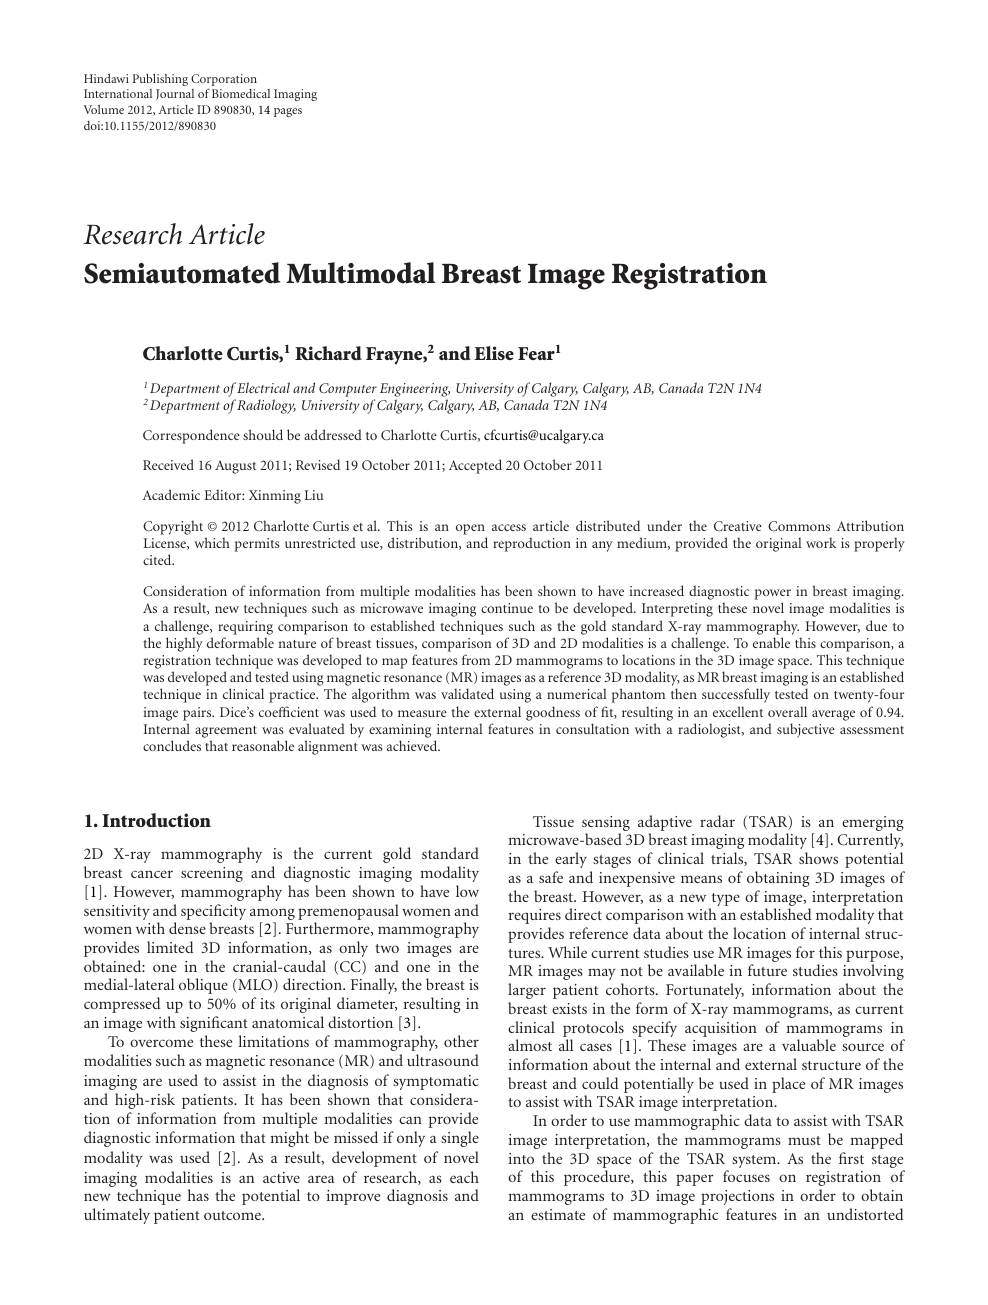 Paper perfect research write